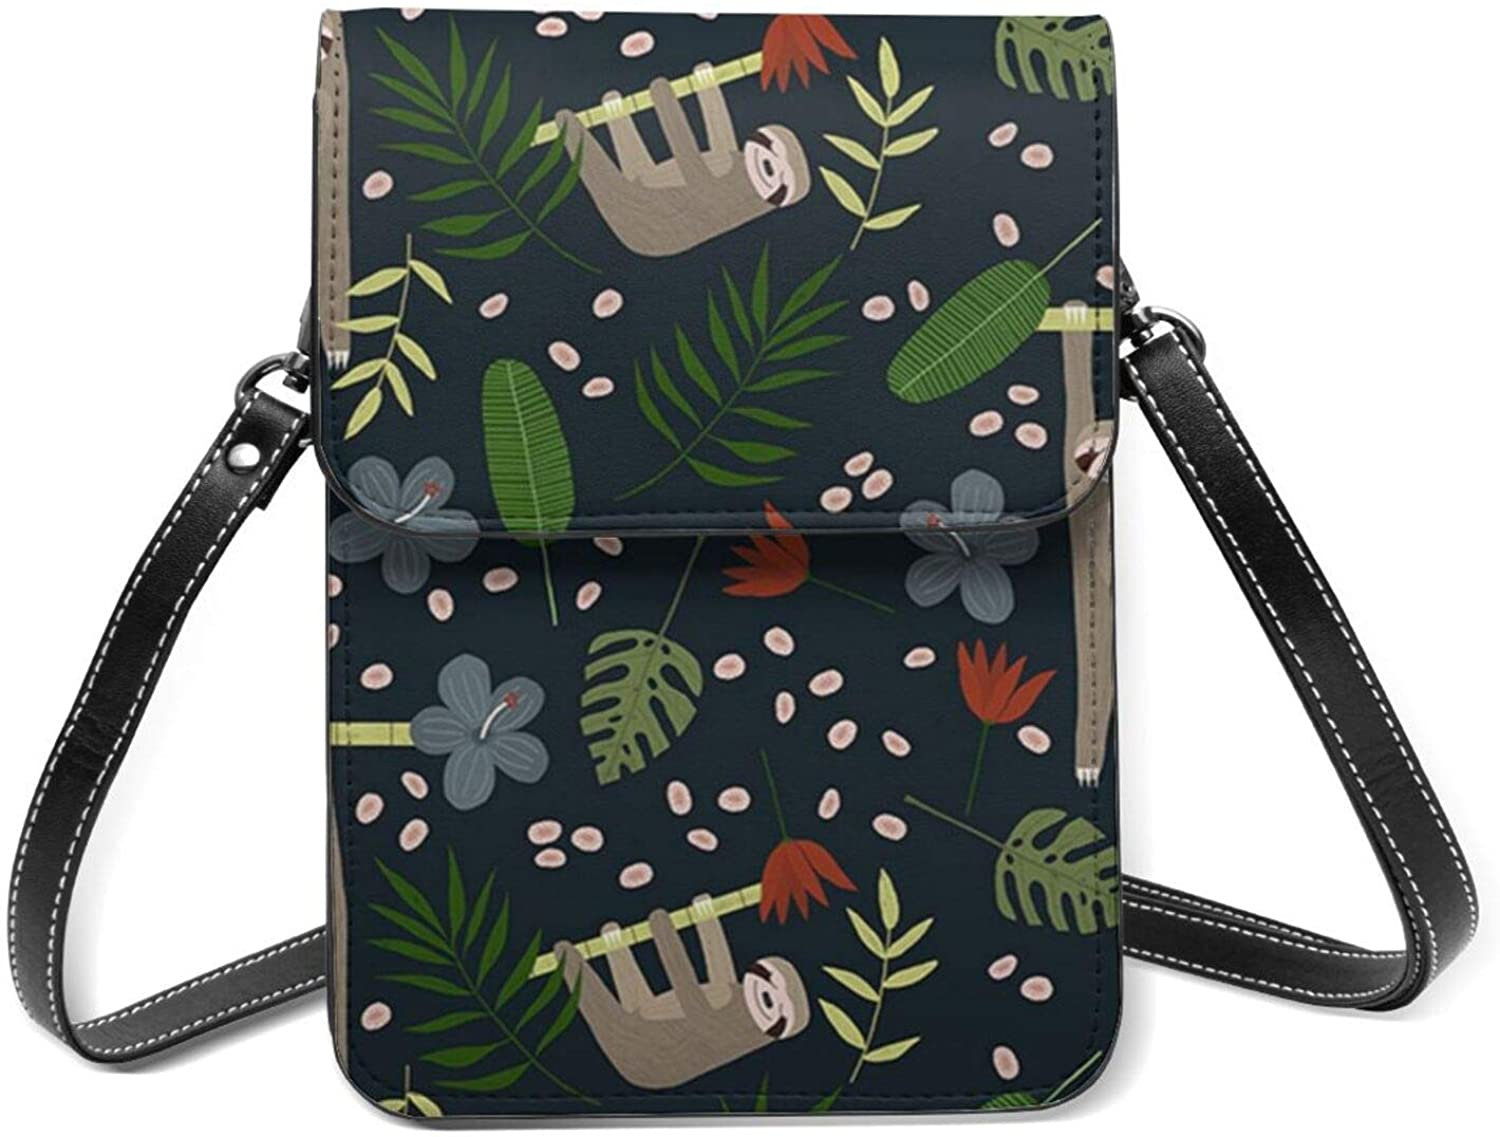 Package Sloth Spoonflower Small Leather Shoulder Bagcellphone Wallet Purse Lightweight Crossbody Handbags For Women